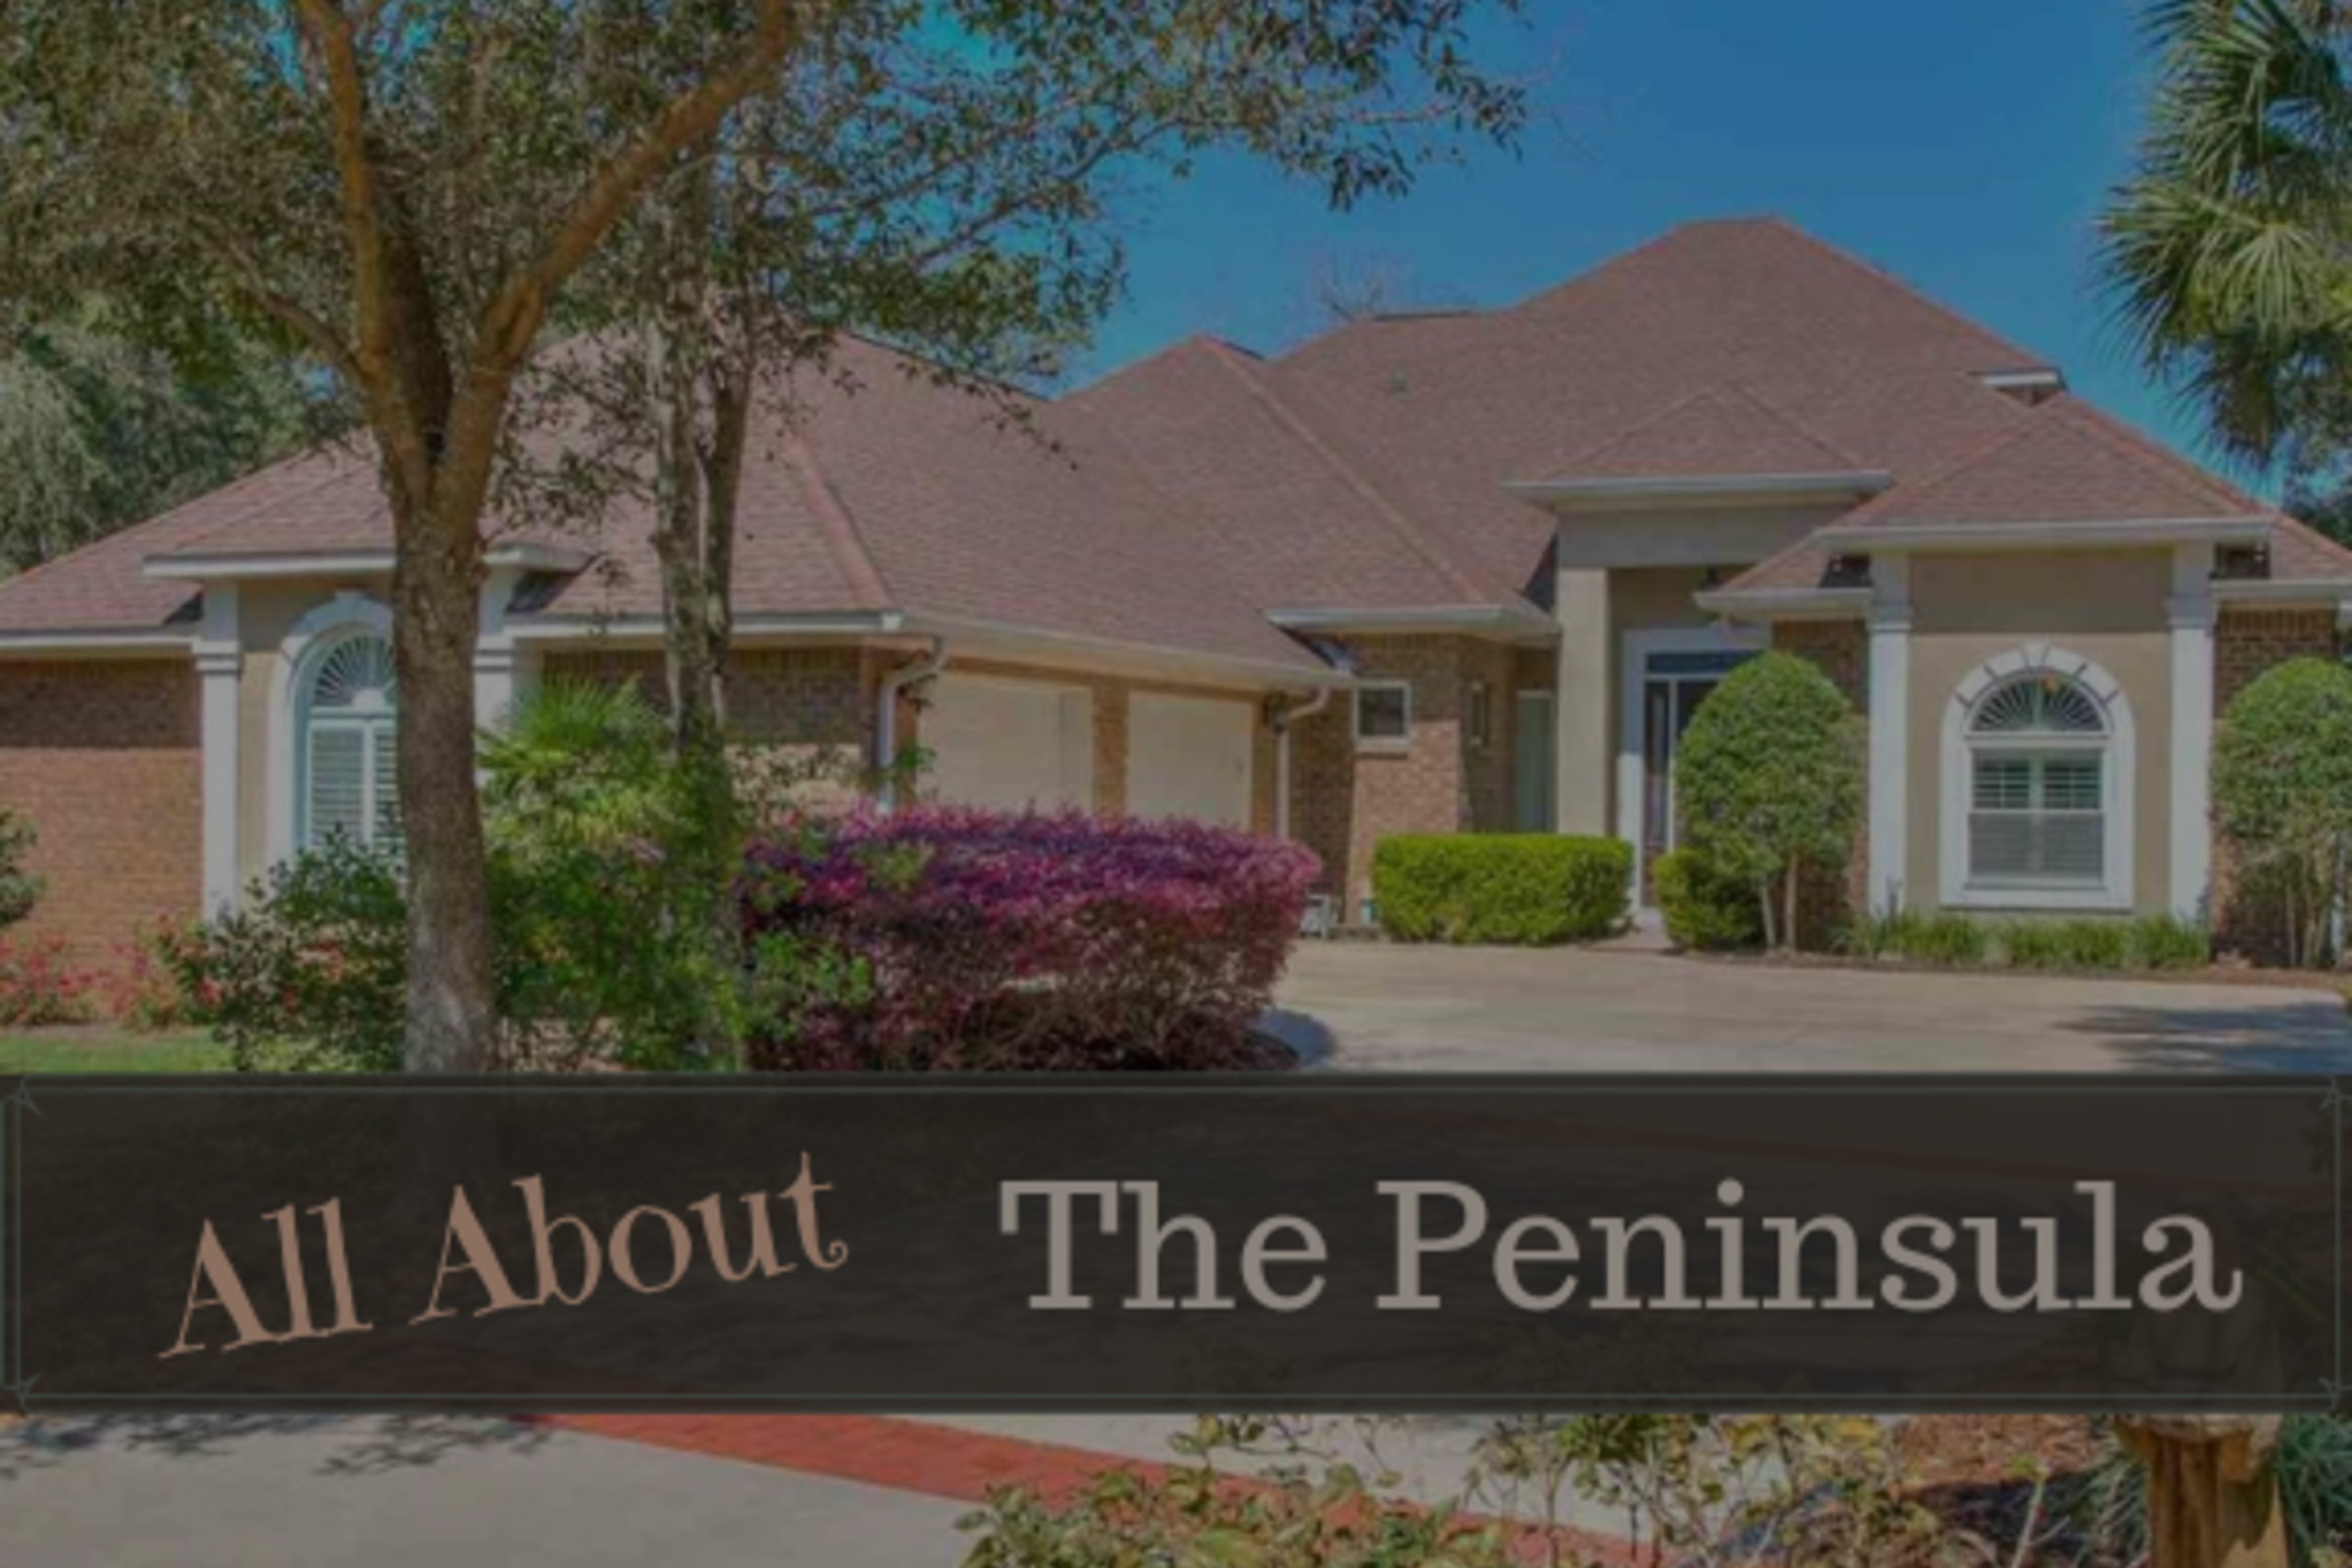 All About The Peninsula